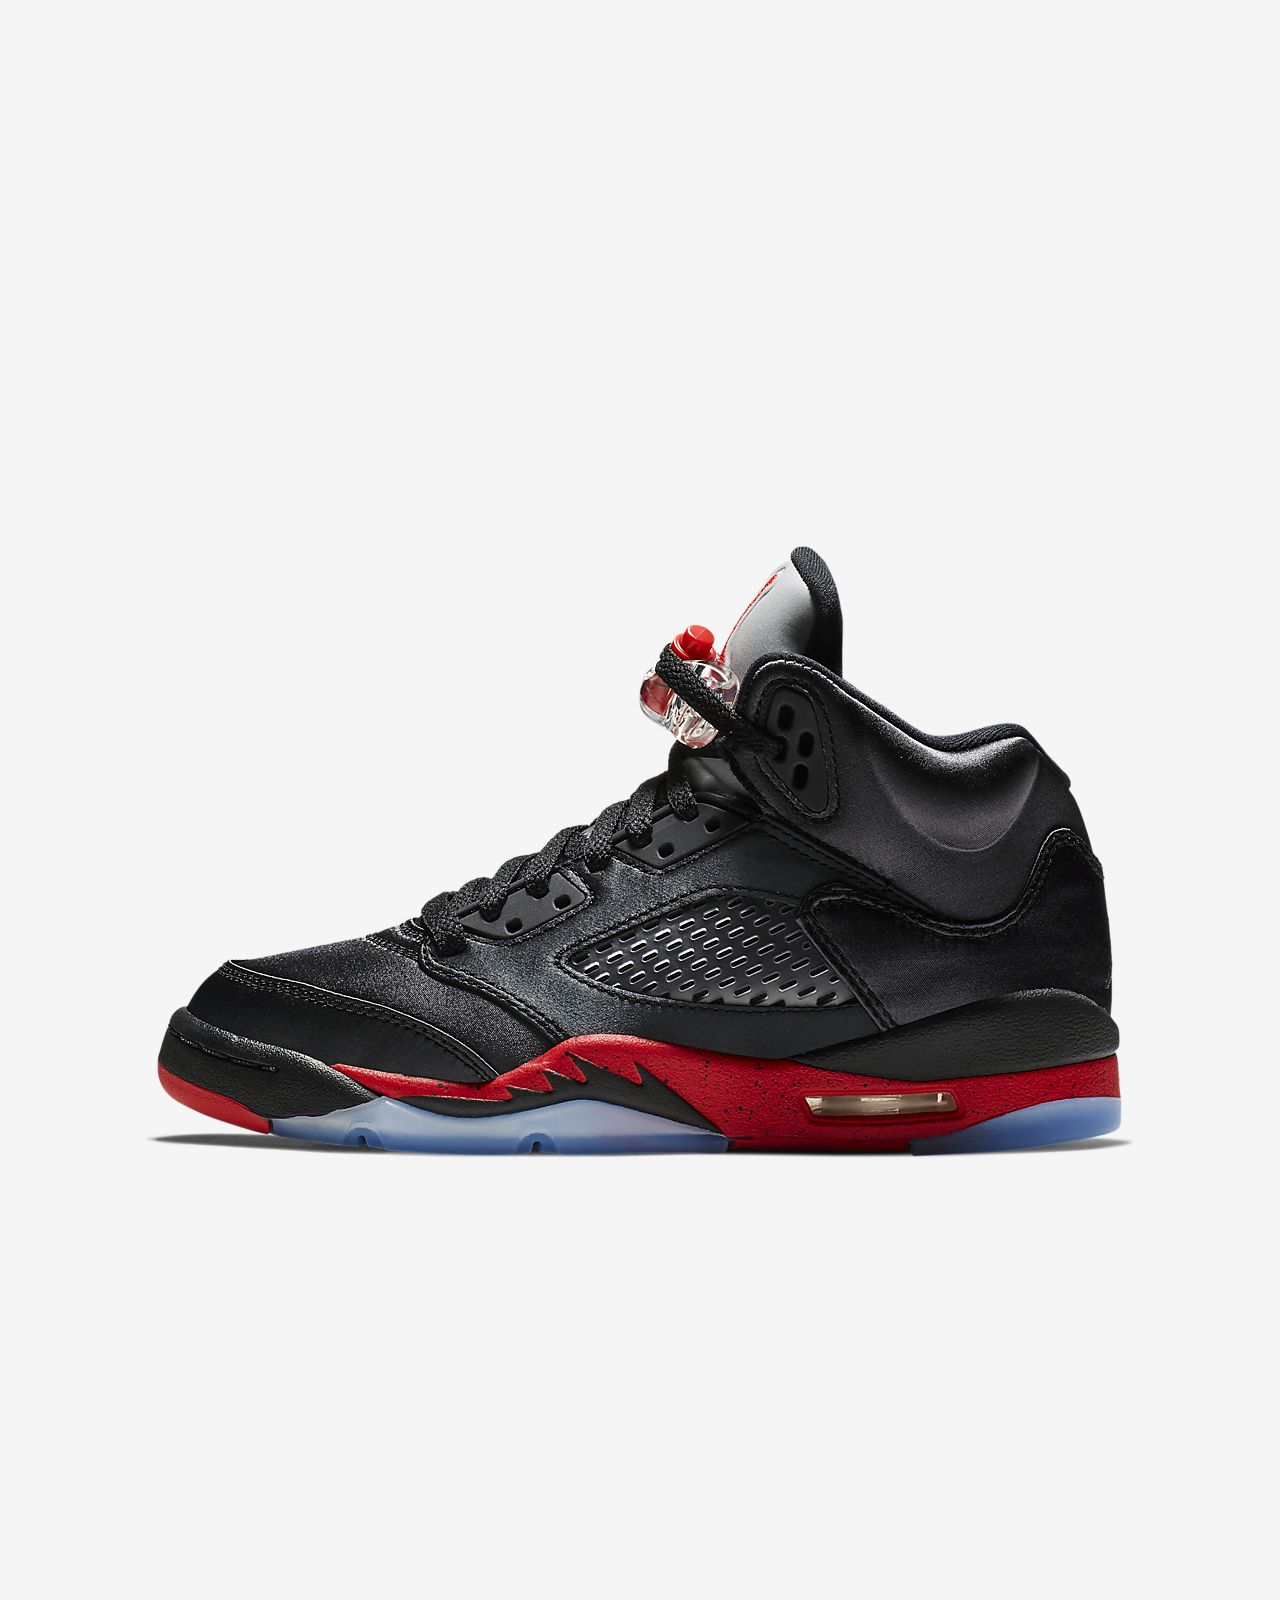 8714d152c8b7 Low Resolution Air Jordan 5 Retro Older Kids  Shoe Air Jordan 5 Retro Older  Kids  Shoe